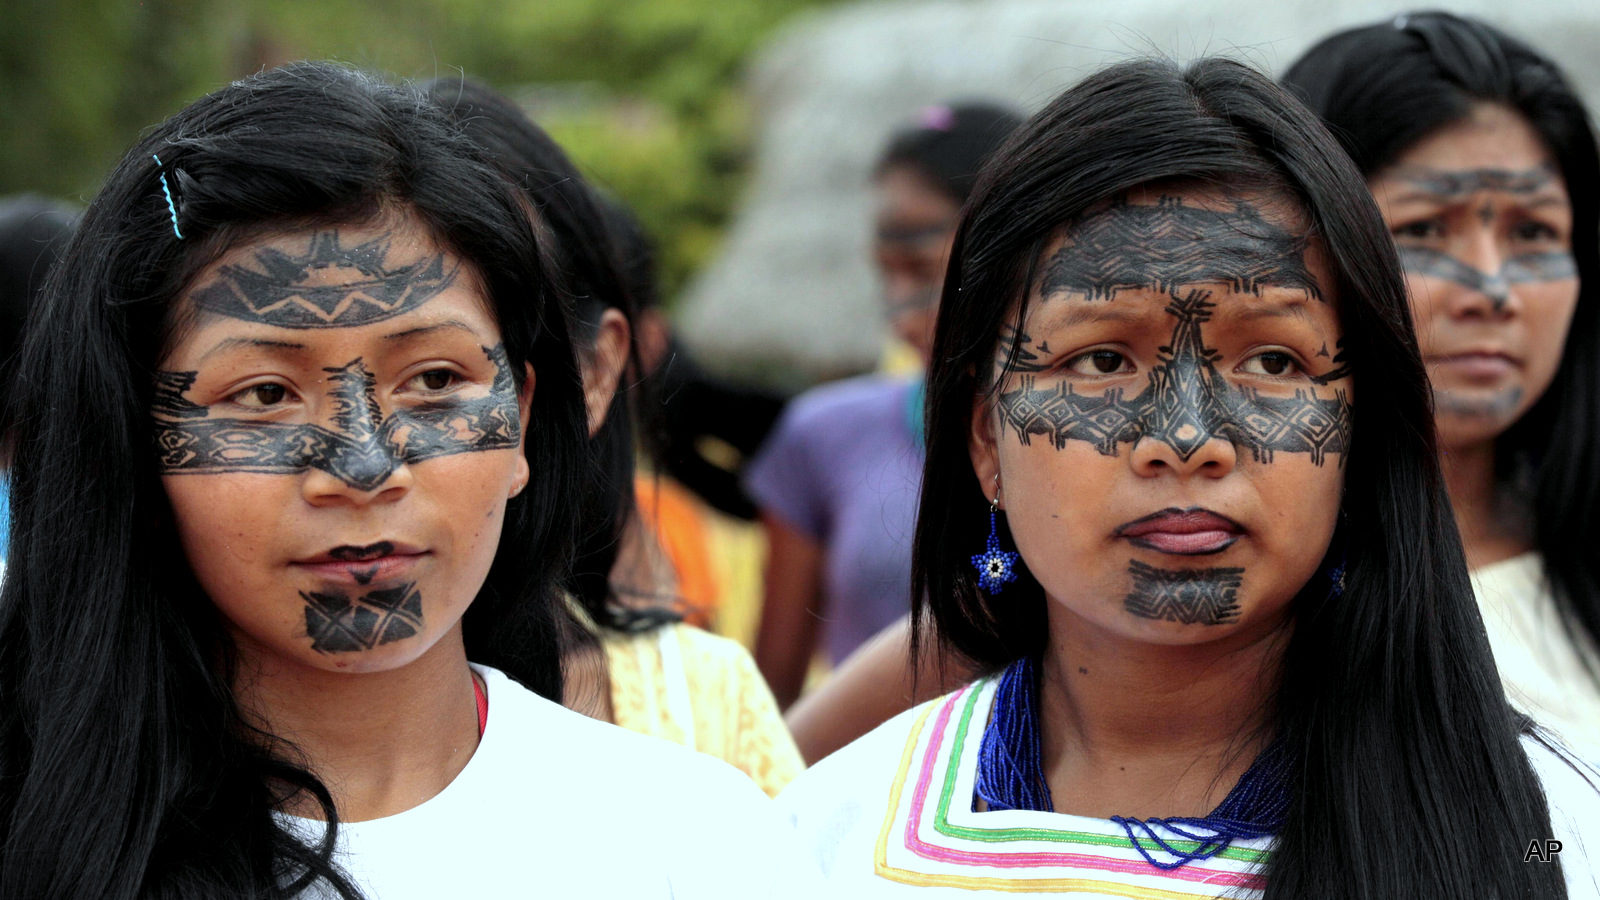 Sarayaku women attend a ceremony where the Ecuadorian Government offered a public apology to the Sarayaku community in Sarayaku, Ecuador, Wednesday, Oct. 1, 2014. The apology from the Ecuadorian state came as part of a ruling by the Inter-American Human Rights Court which found that the government allowed for oil exploration in Sarayaku lands without their consent. (AP Photos/Dolores Ochoa)